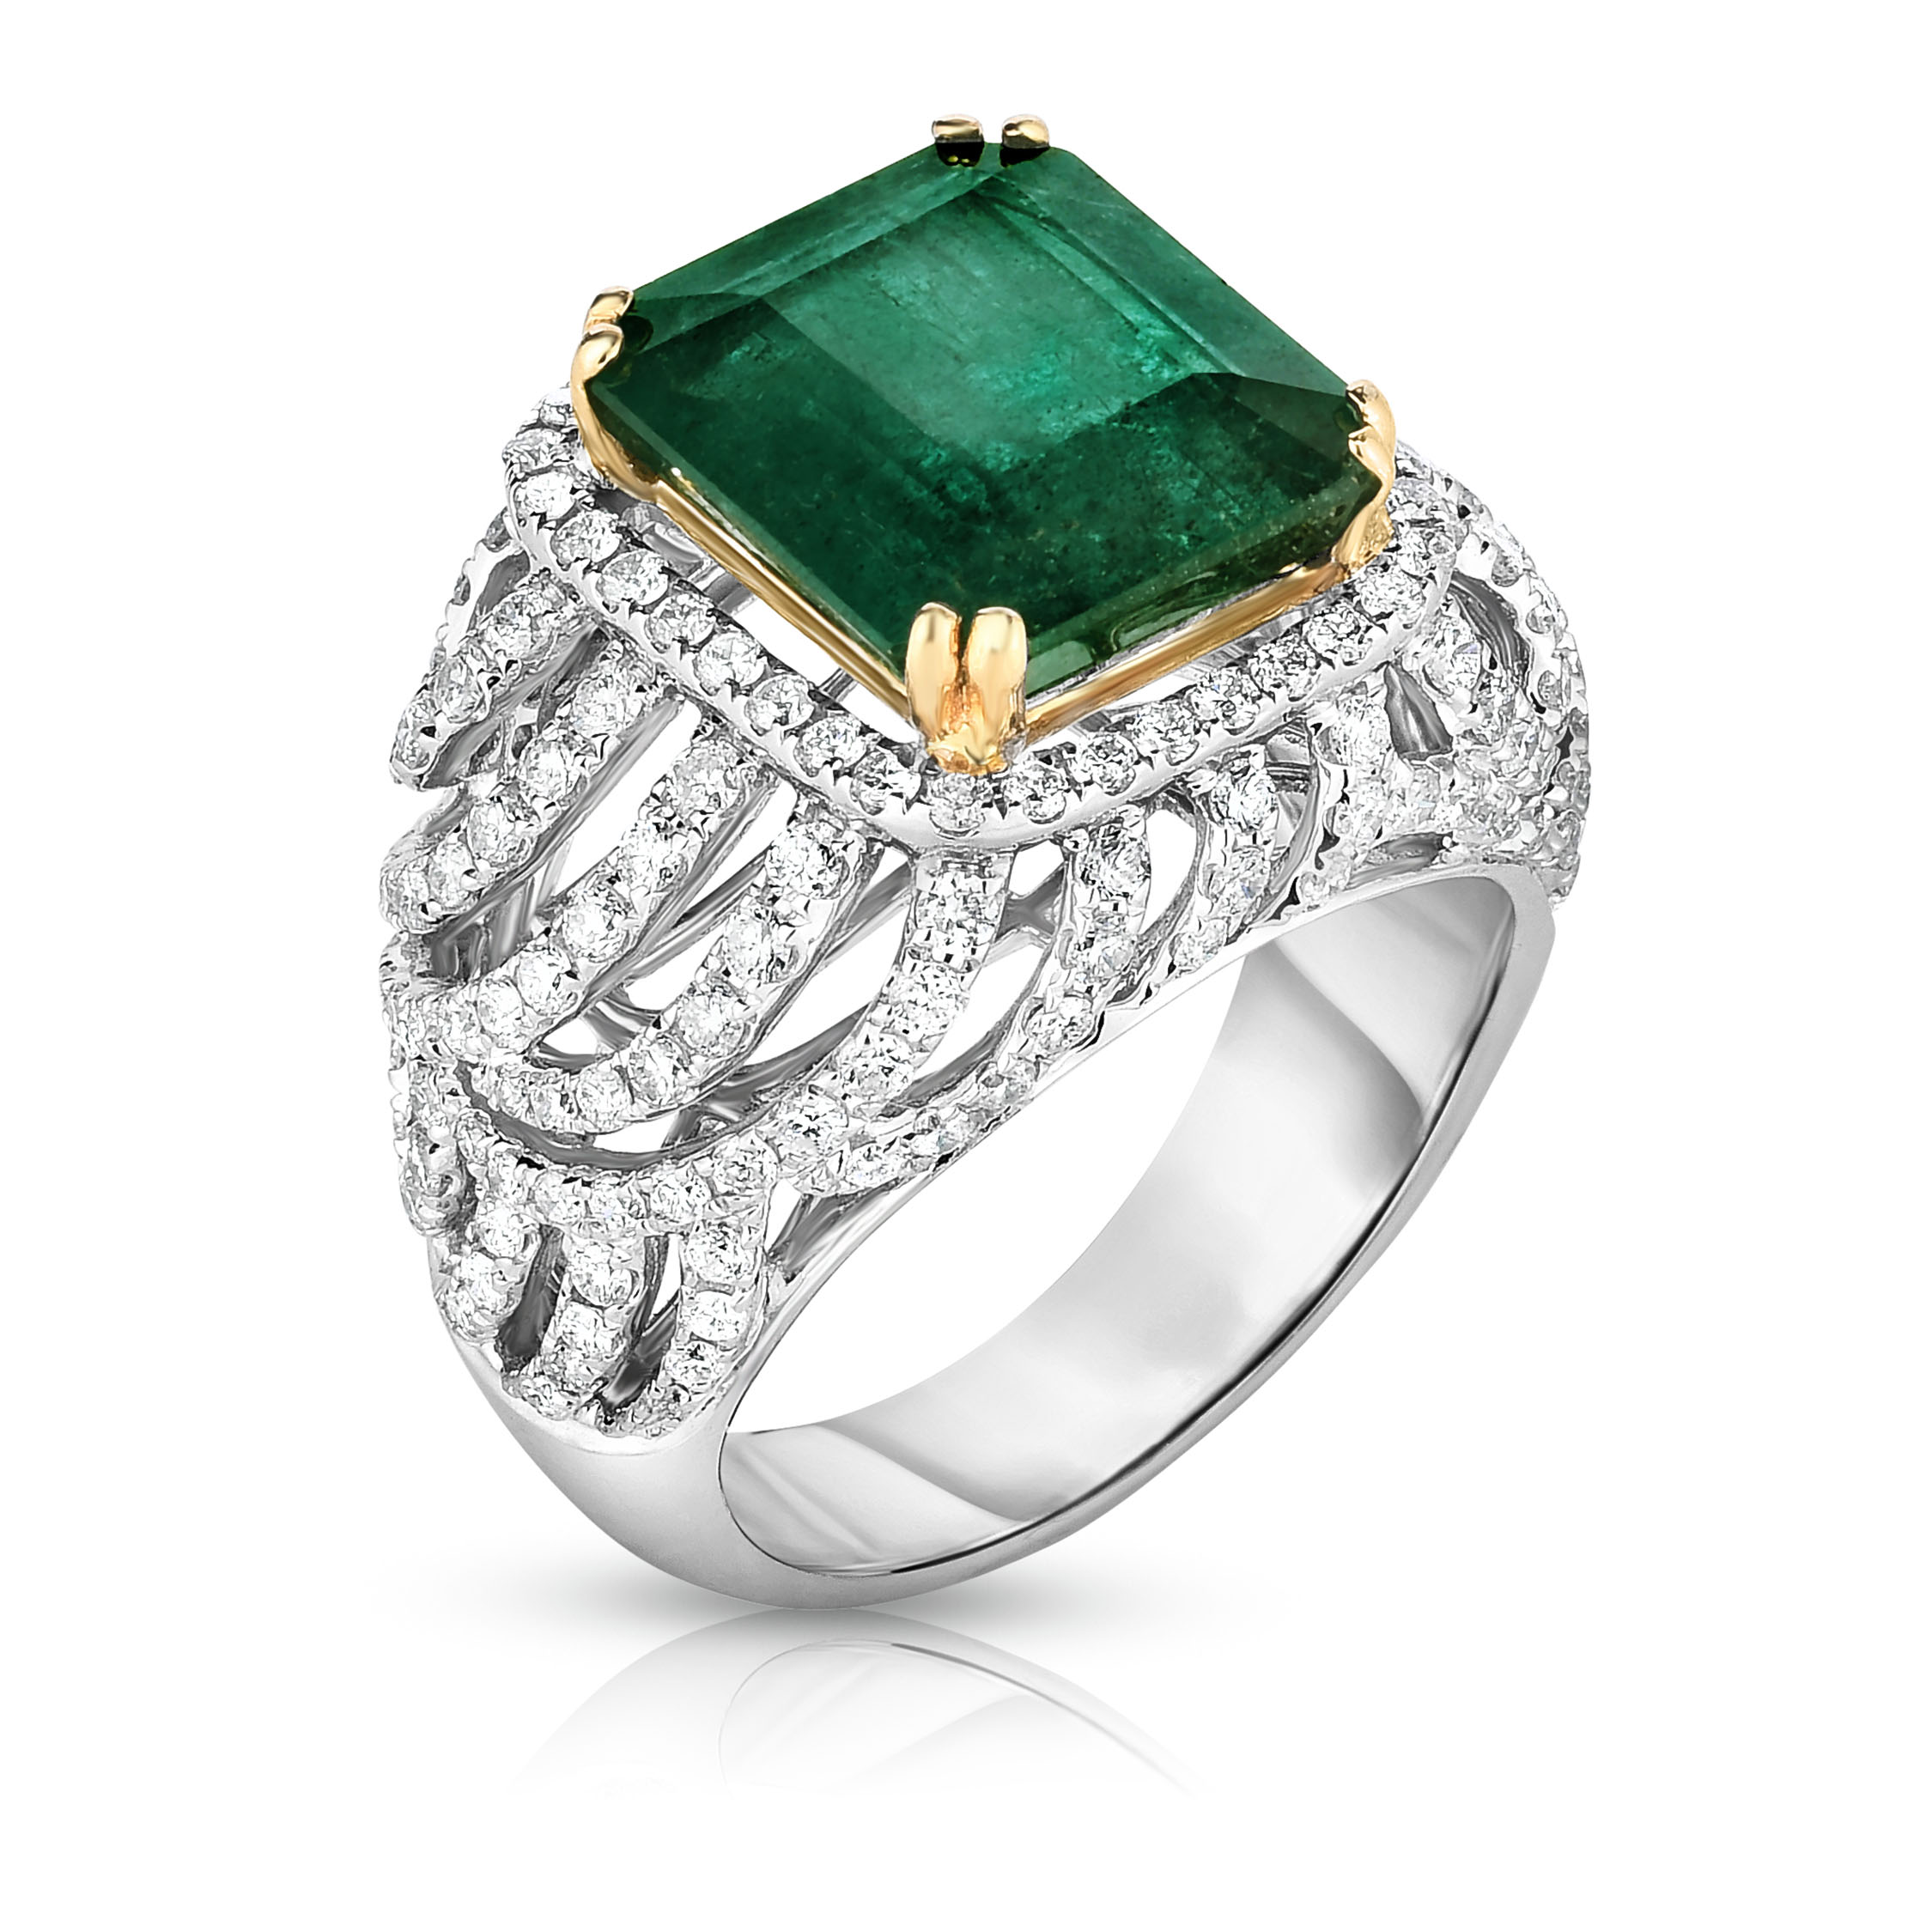 Square emerald and diamond engagement ring